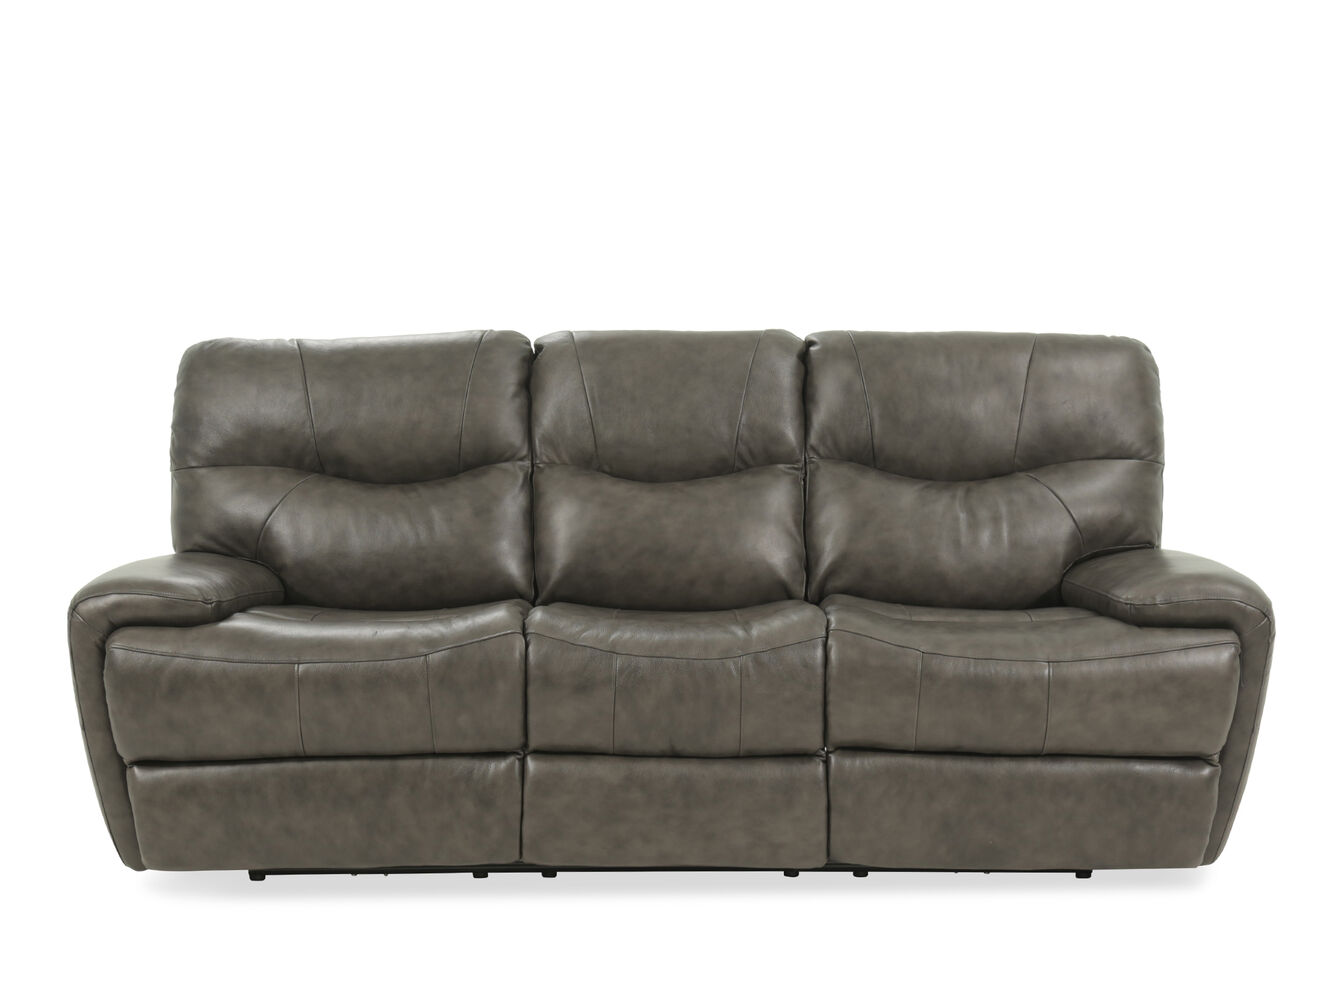 leather 92 power reclining sofa in gray mathis brothers furniture. Black Bedroom Furniture Sets. Home Design Ideas